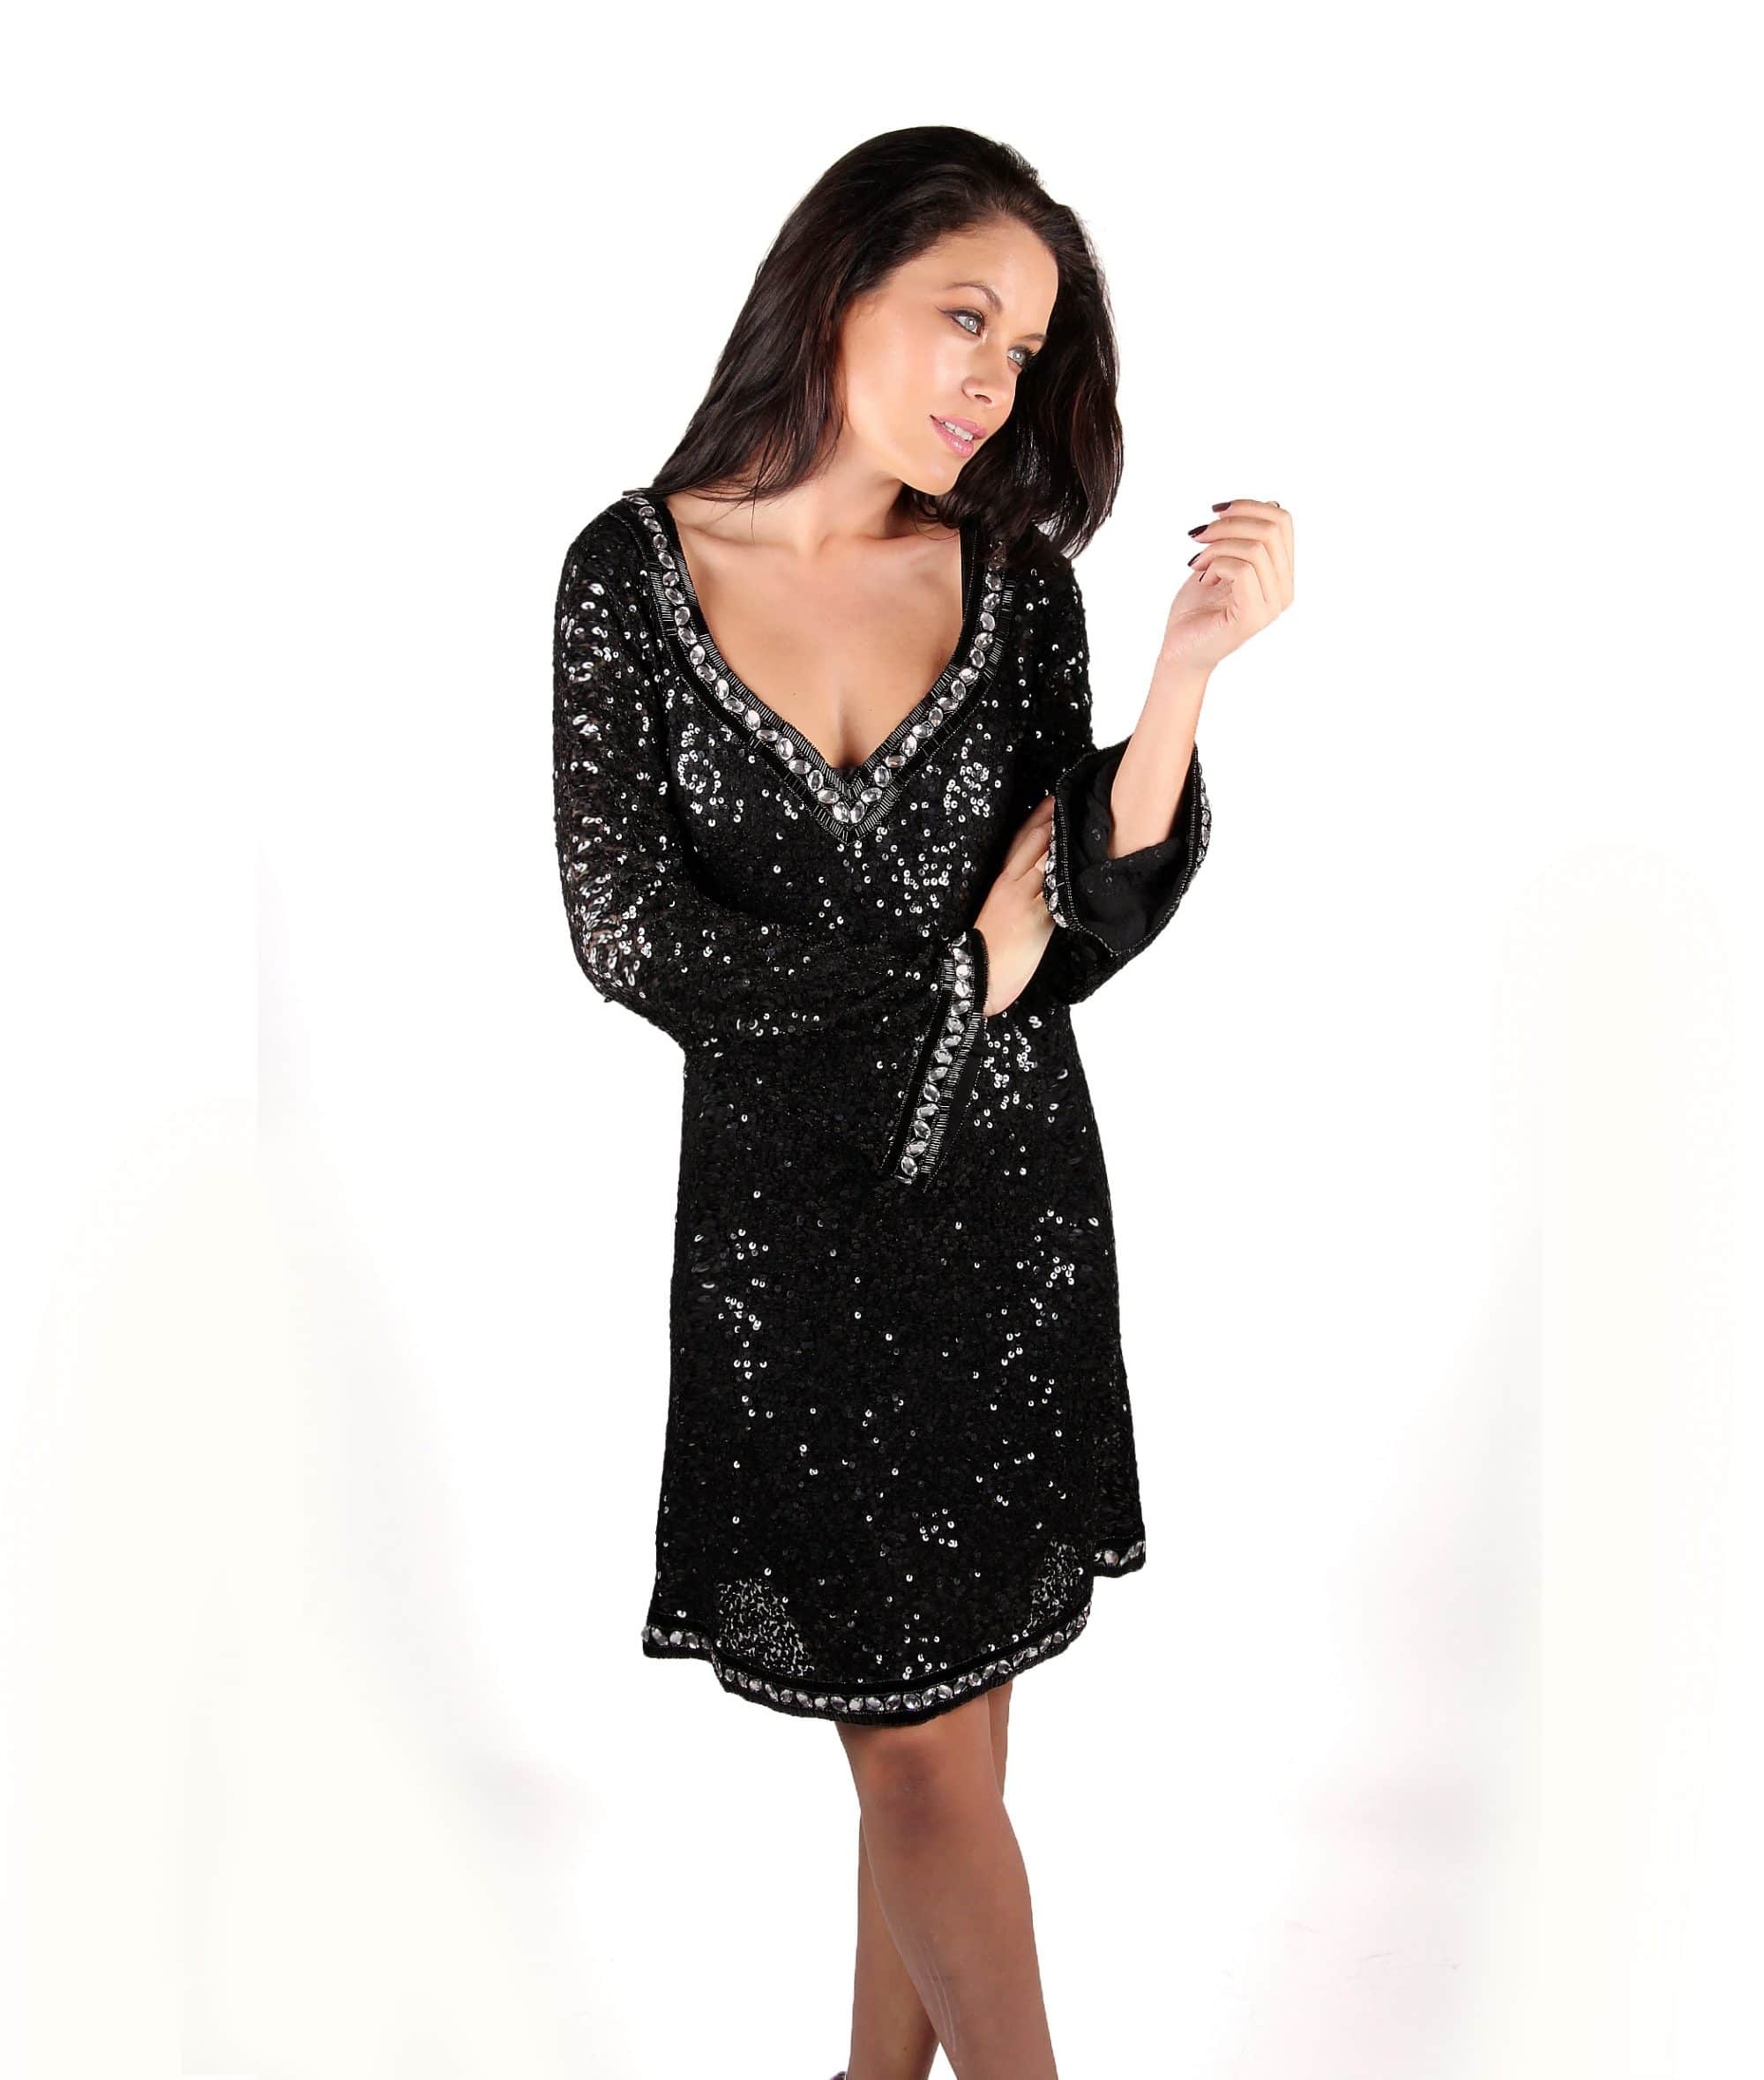 Windsor Store has the perfect selection of sexy and trendy club dresses. Dance the night away in mini dresses, bodycons, bandage dresses, cut outs, and sequins that speaks to the party girl in you! Inspiring and empowering women since